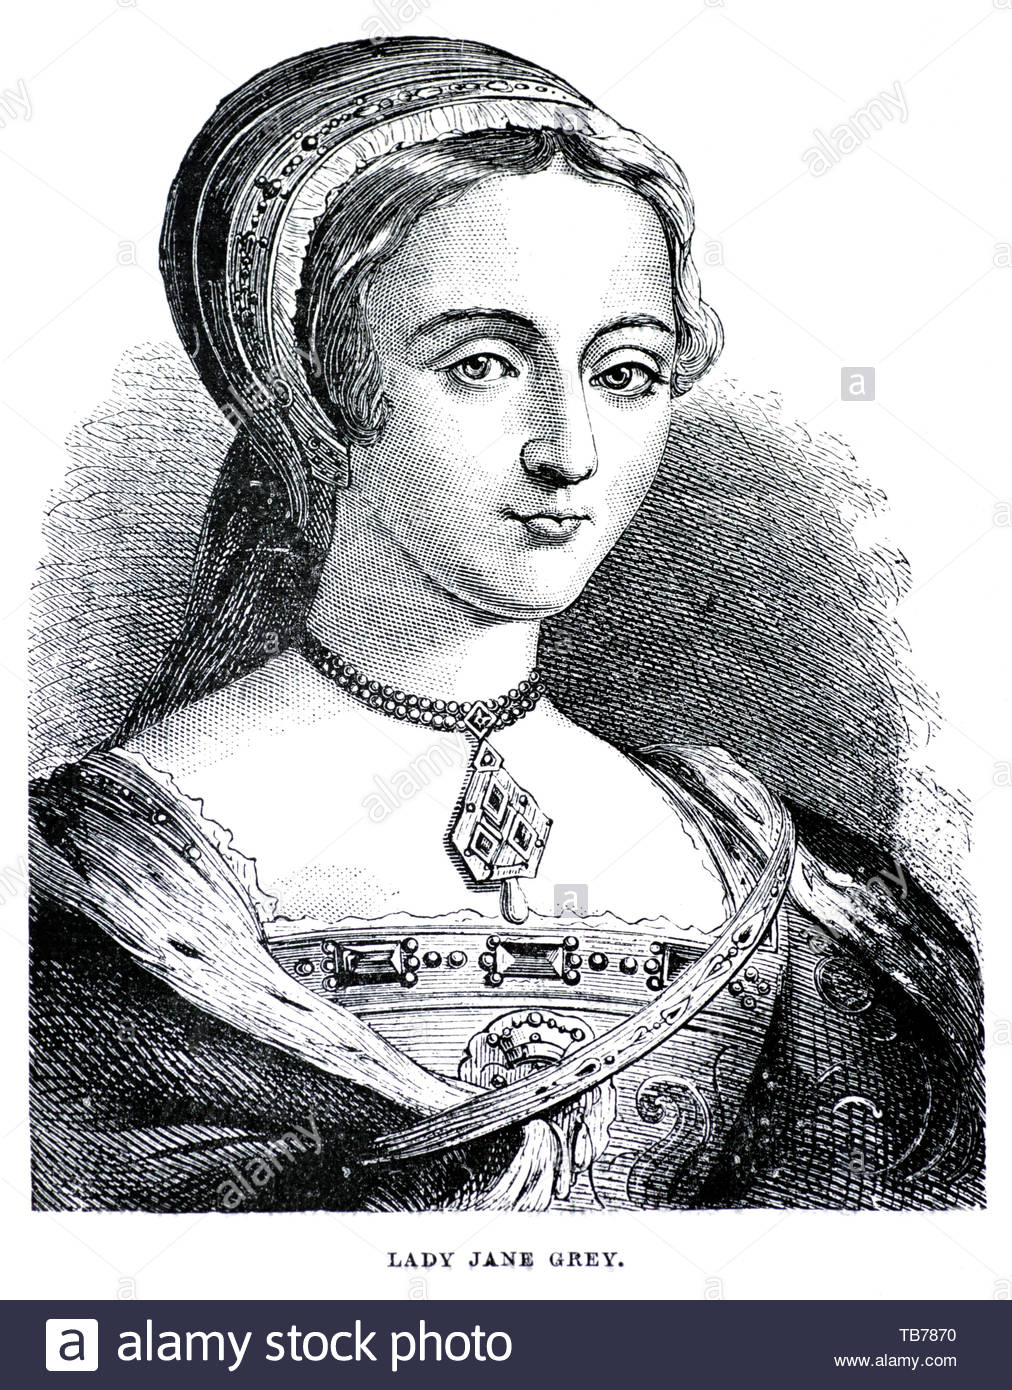 Lady Jane Grey portrait,1537 – 1554, was the disputed Queen of England and Ireland from 10th July until 19th July 1553 - Stock Image